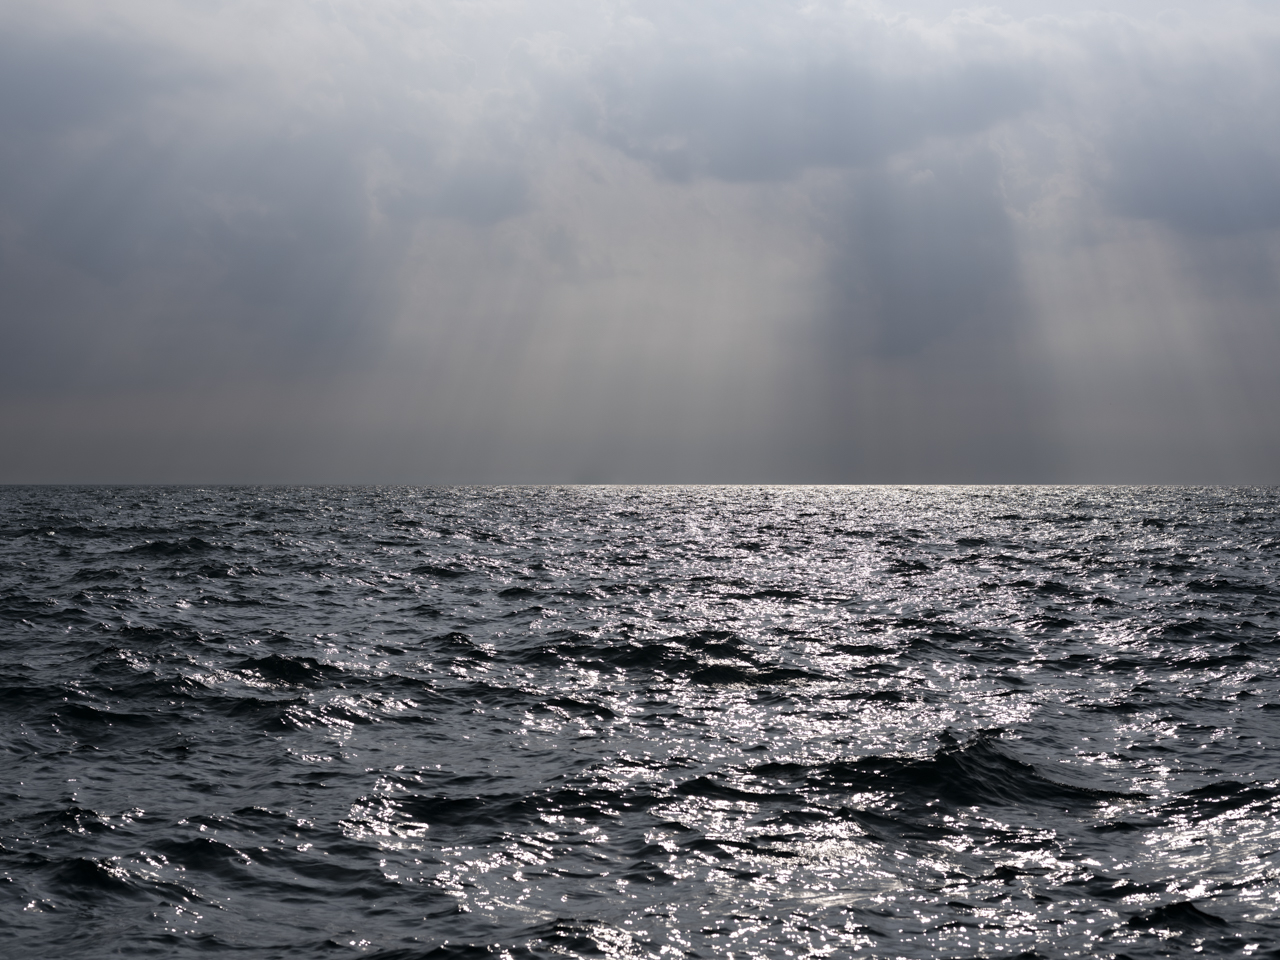 sun streams through heavy clouds over a very dark and roiling Lake Michigan